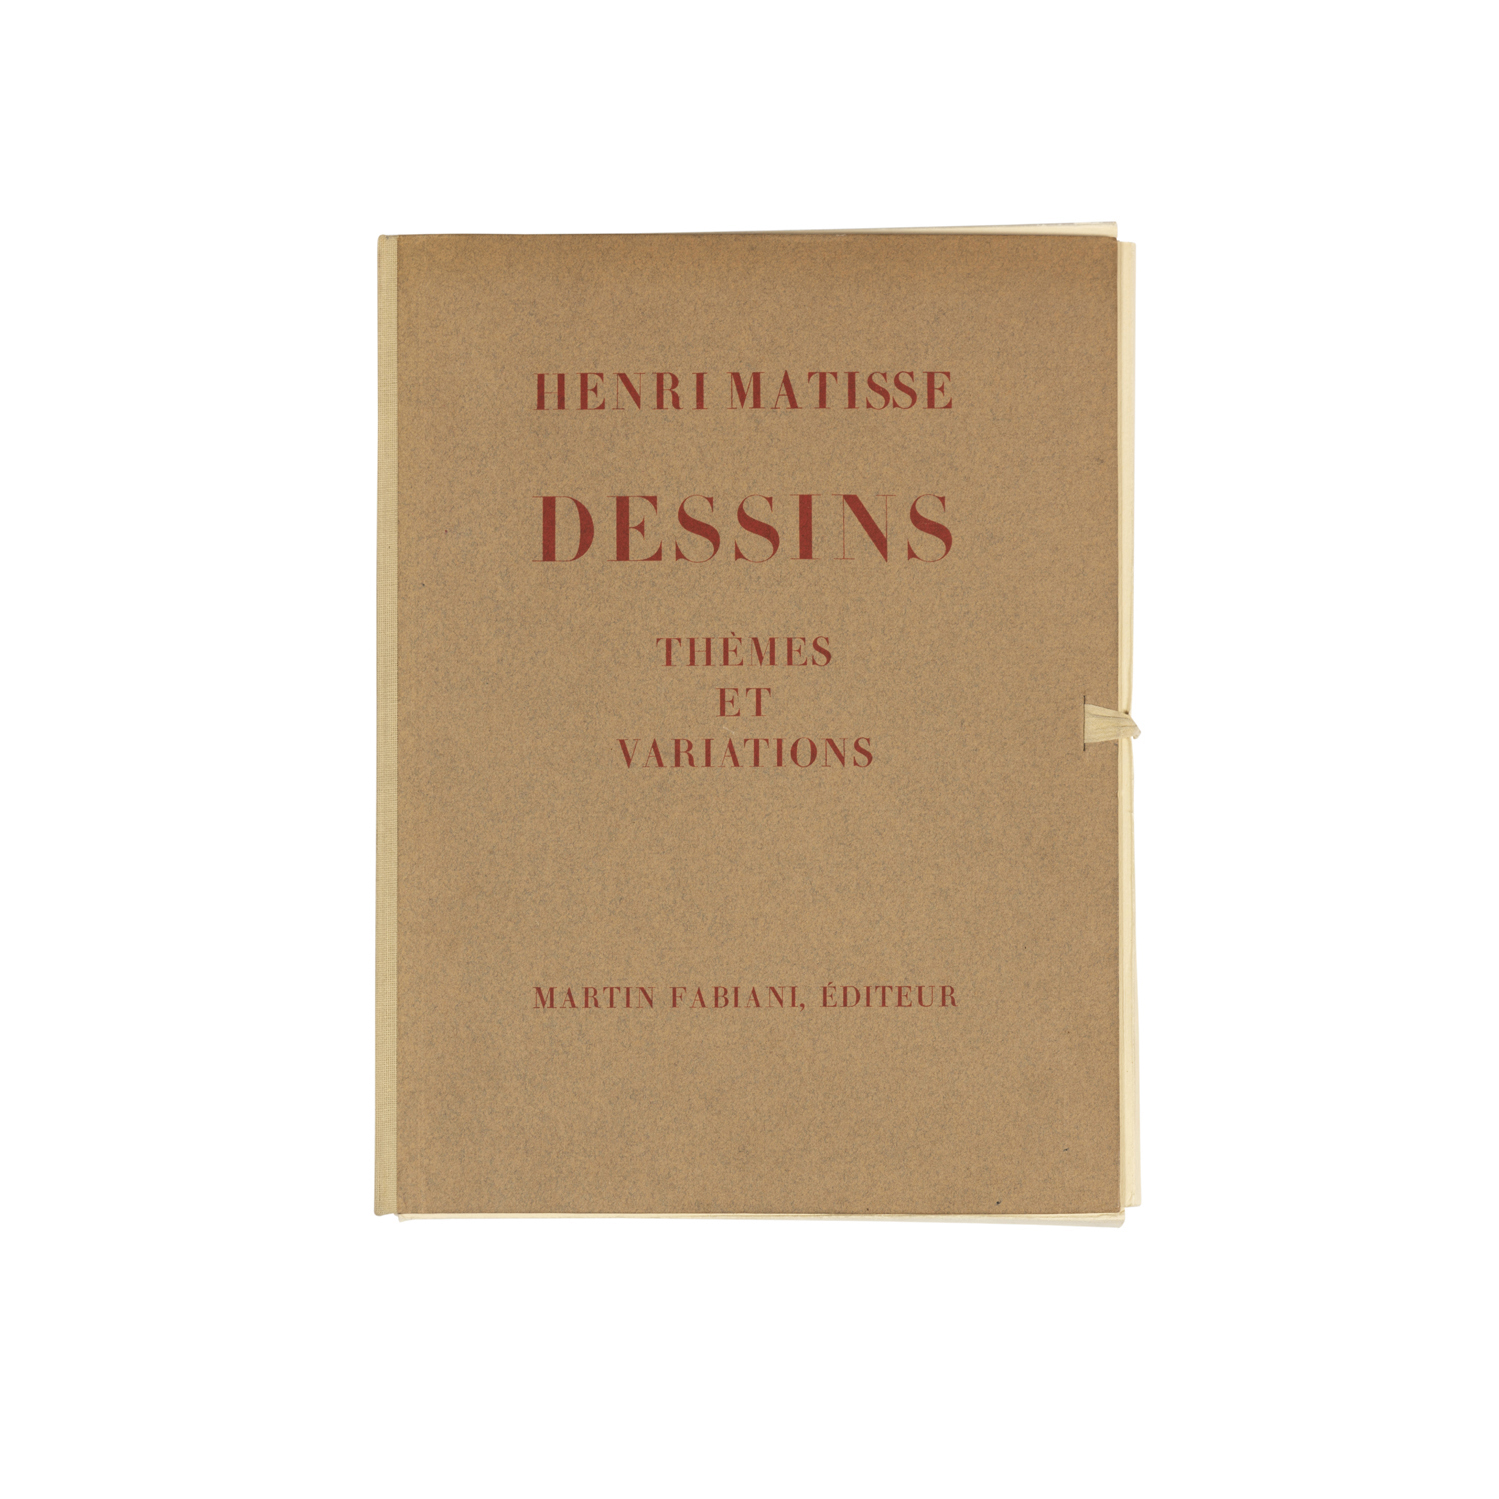 Daniel Varenne Collection Illustrated books, books and documentation